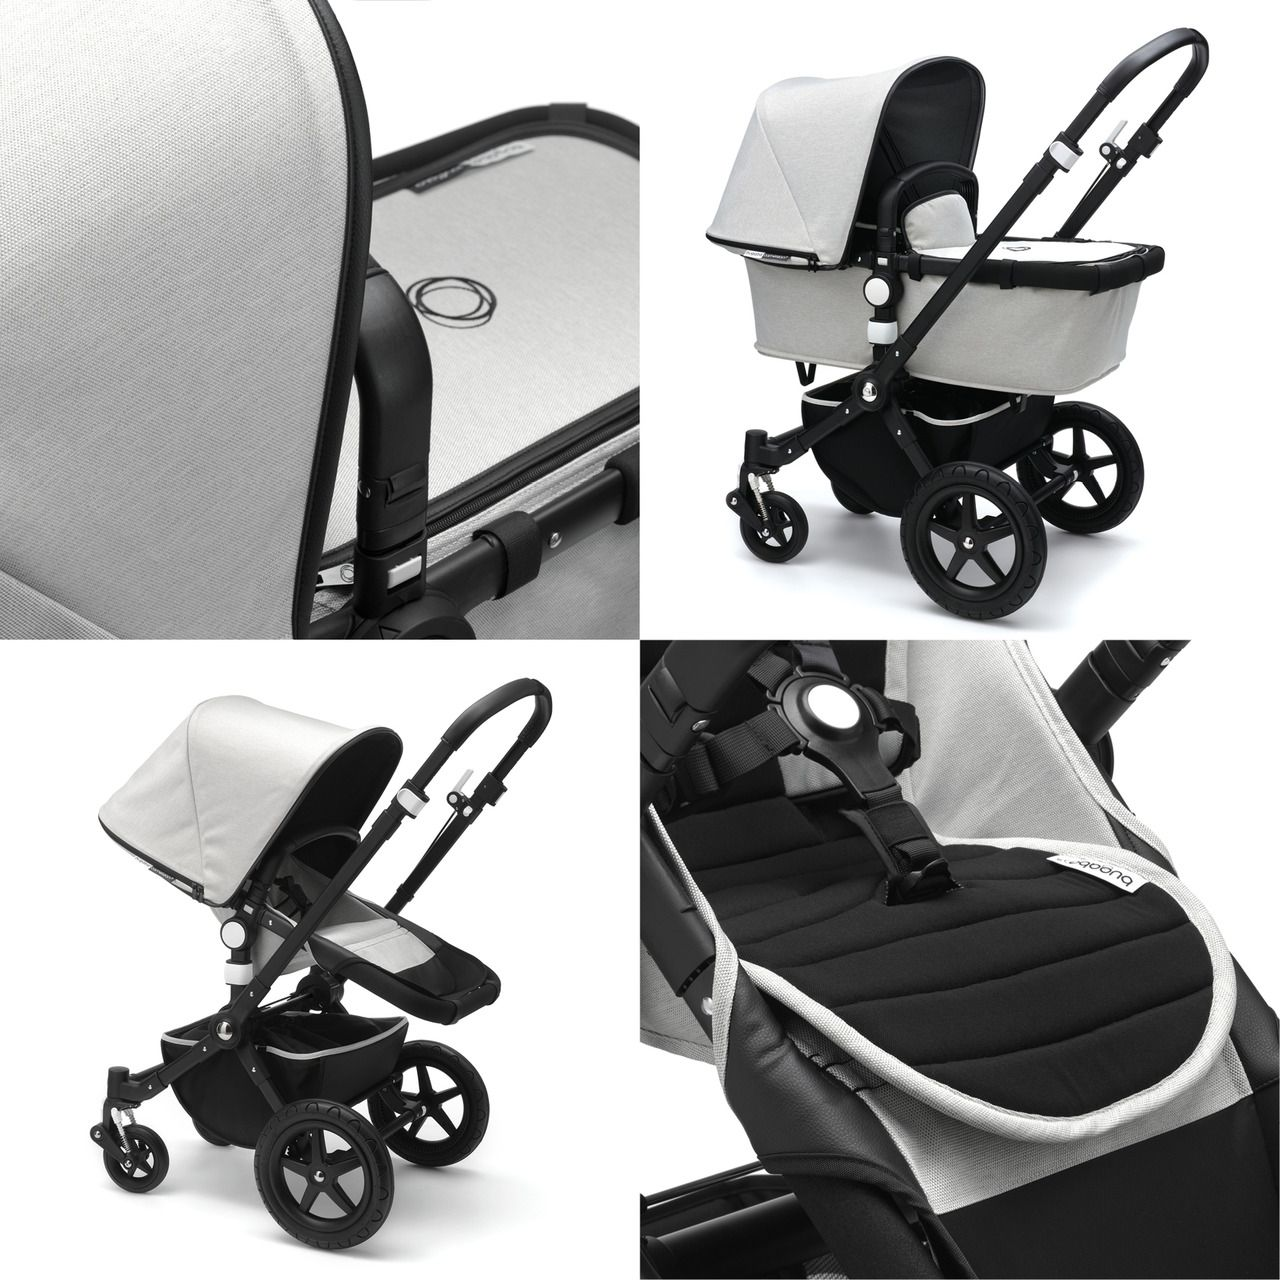 Bugaboo Cameleon 3 Regenschutz Anbringen We Re Super Excited To Announce The Release Of The Bugaboo